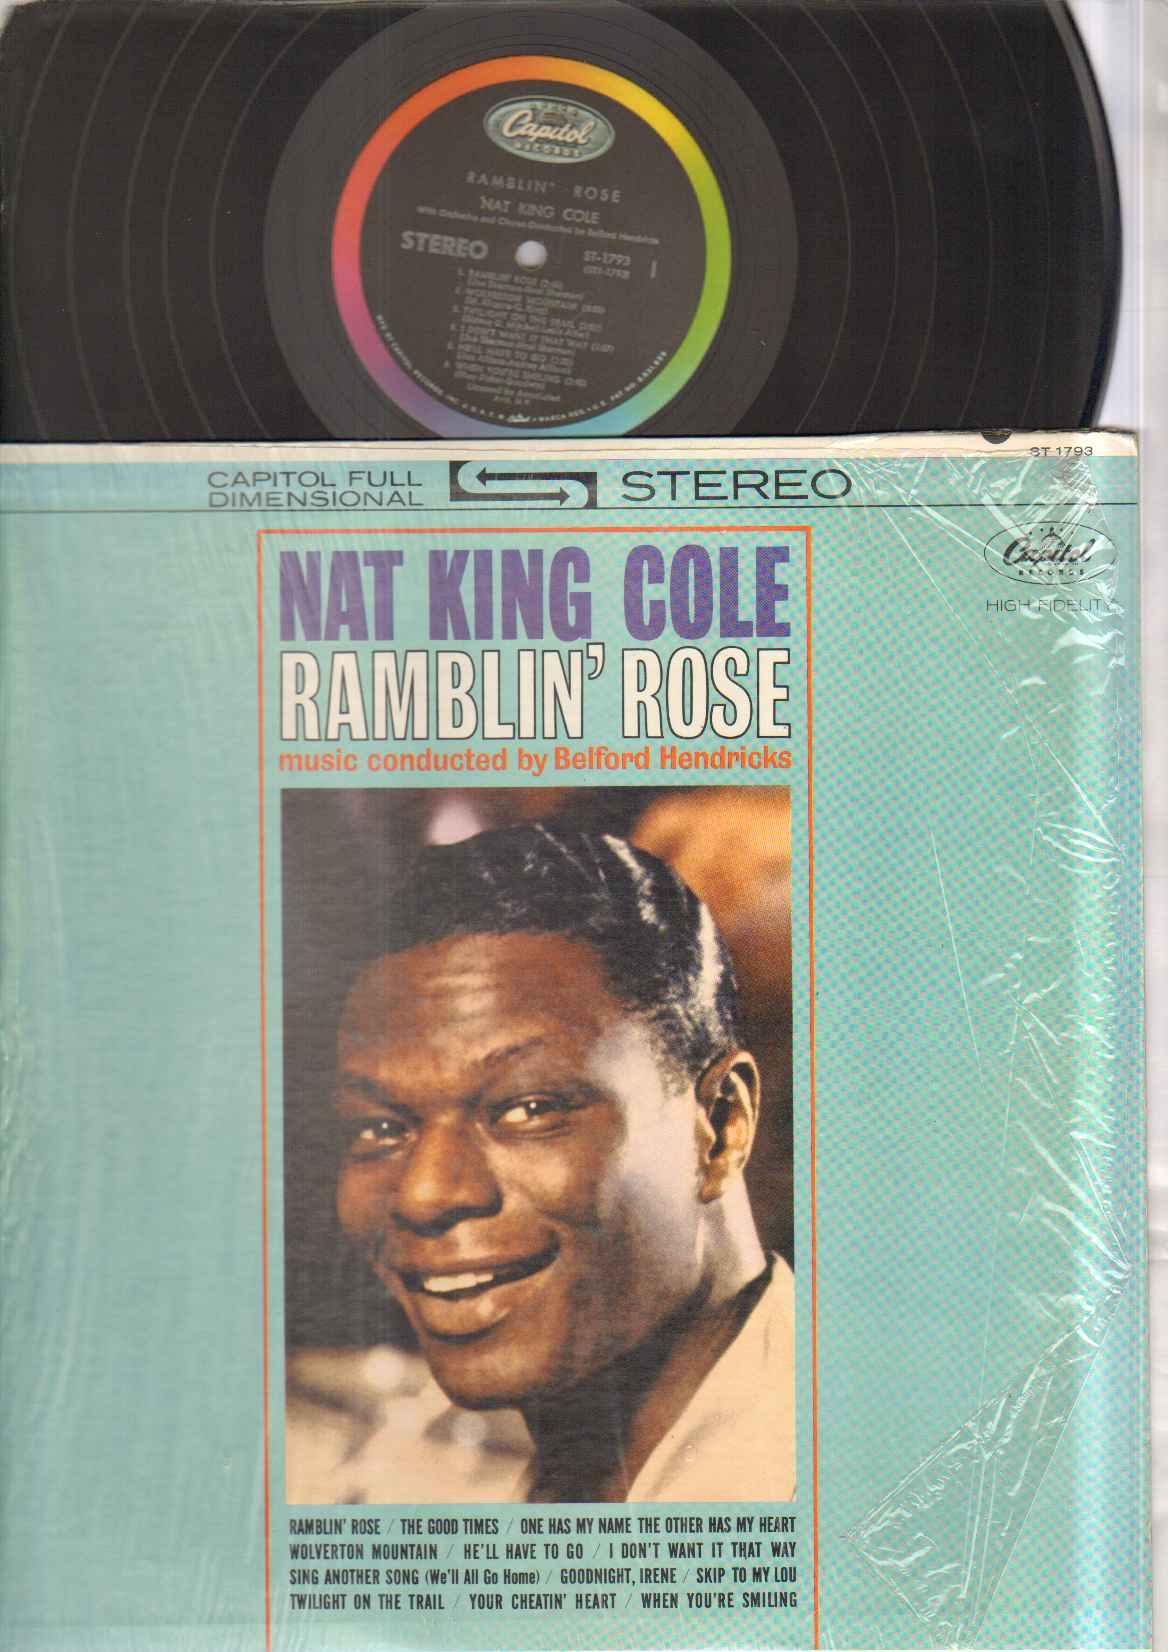 Ramblin Rose - NAT KING COLE